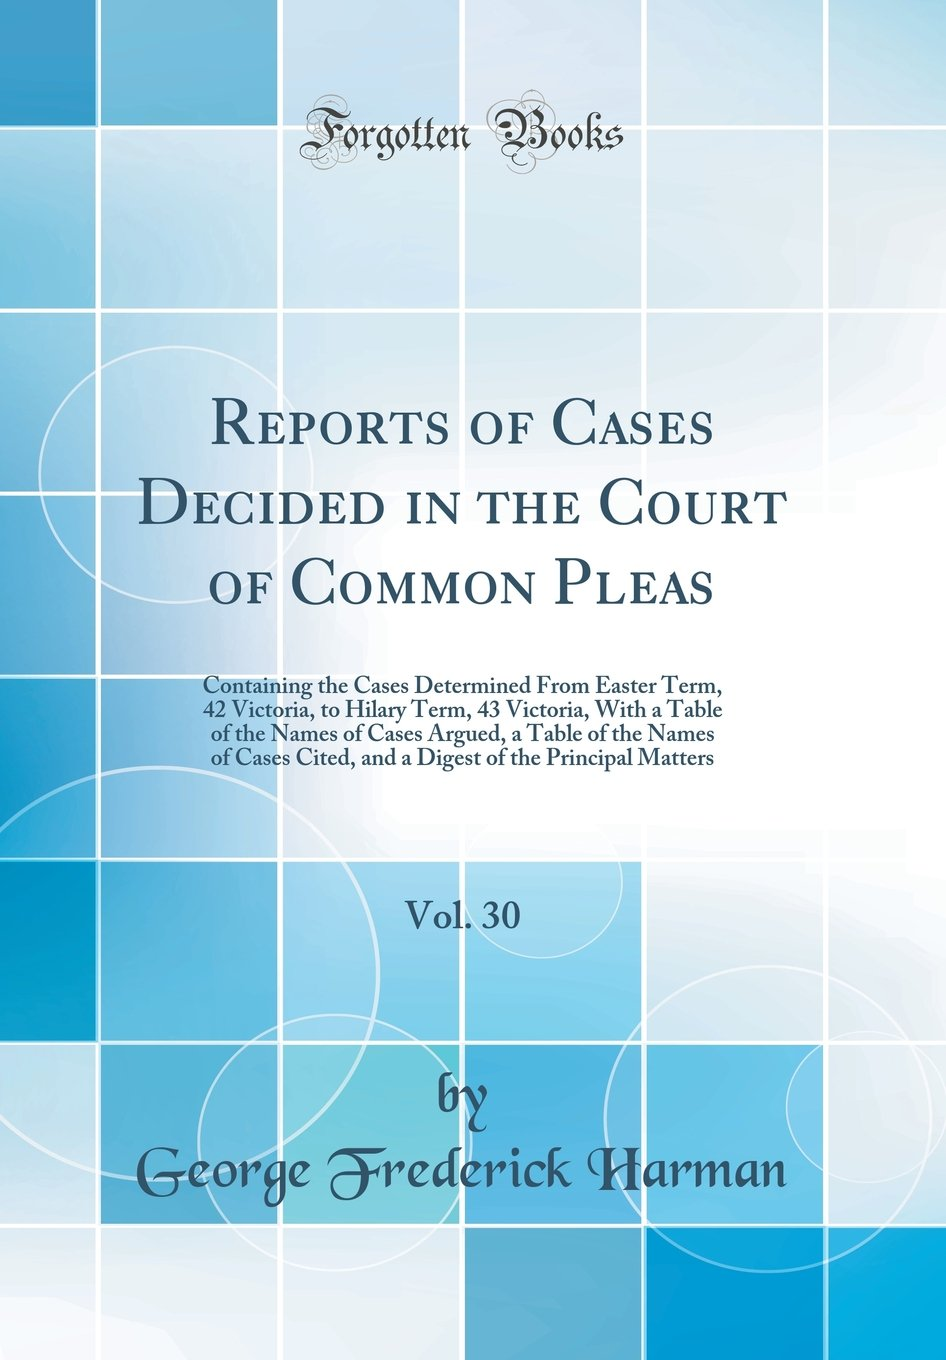 Reports of Cases Decided in the Court of Common Pleas, Vol. 30: Containing the Cases Determined From Easter Term, 42 Victoria, to Hilary Term, 43 ... the Names of Cases Cited, and a Digest of the PDF